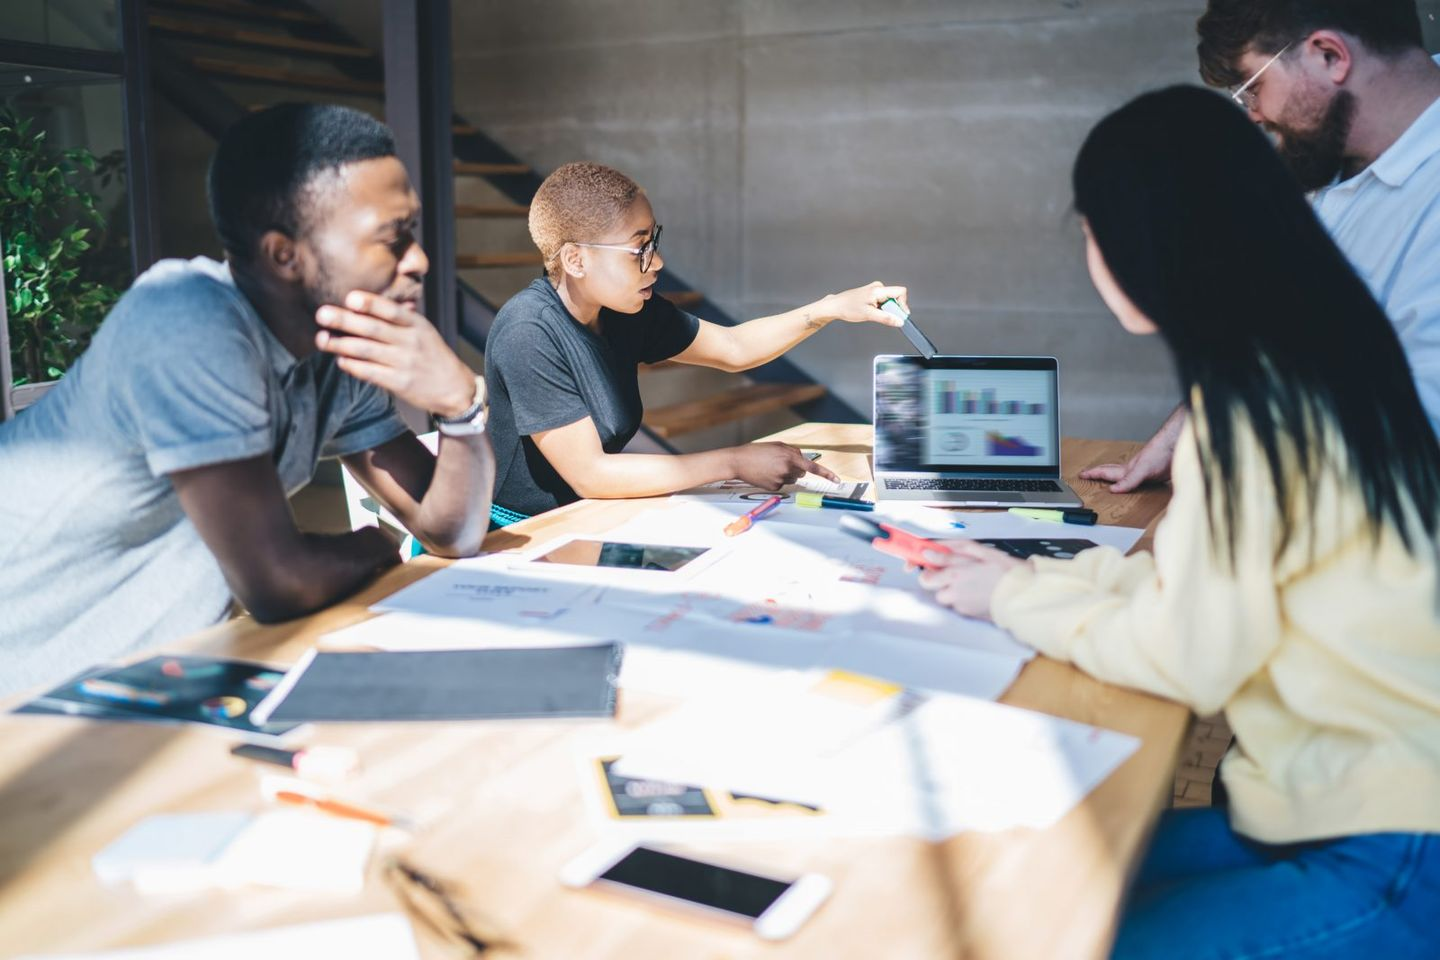 Black woman presenting charts on laptop during meeting with colleagues